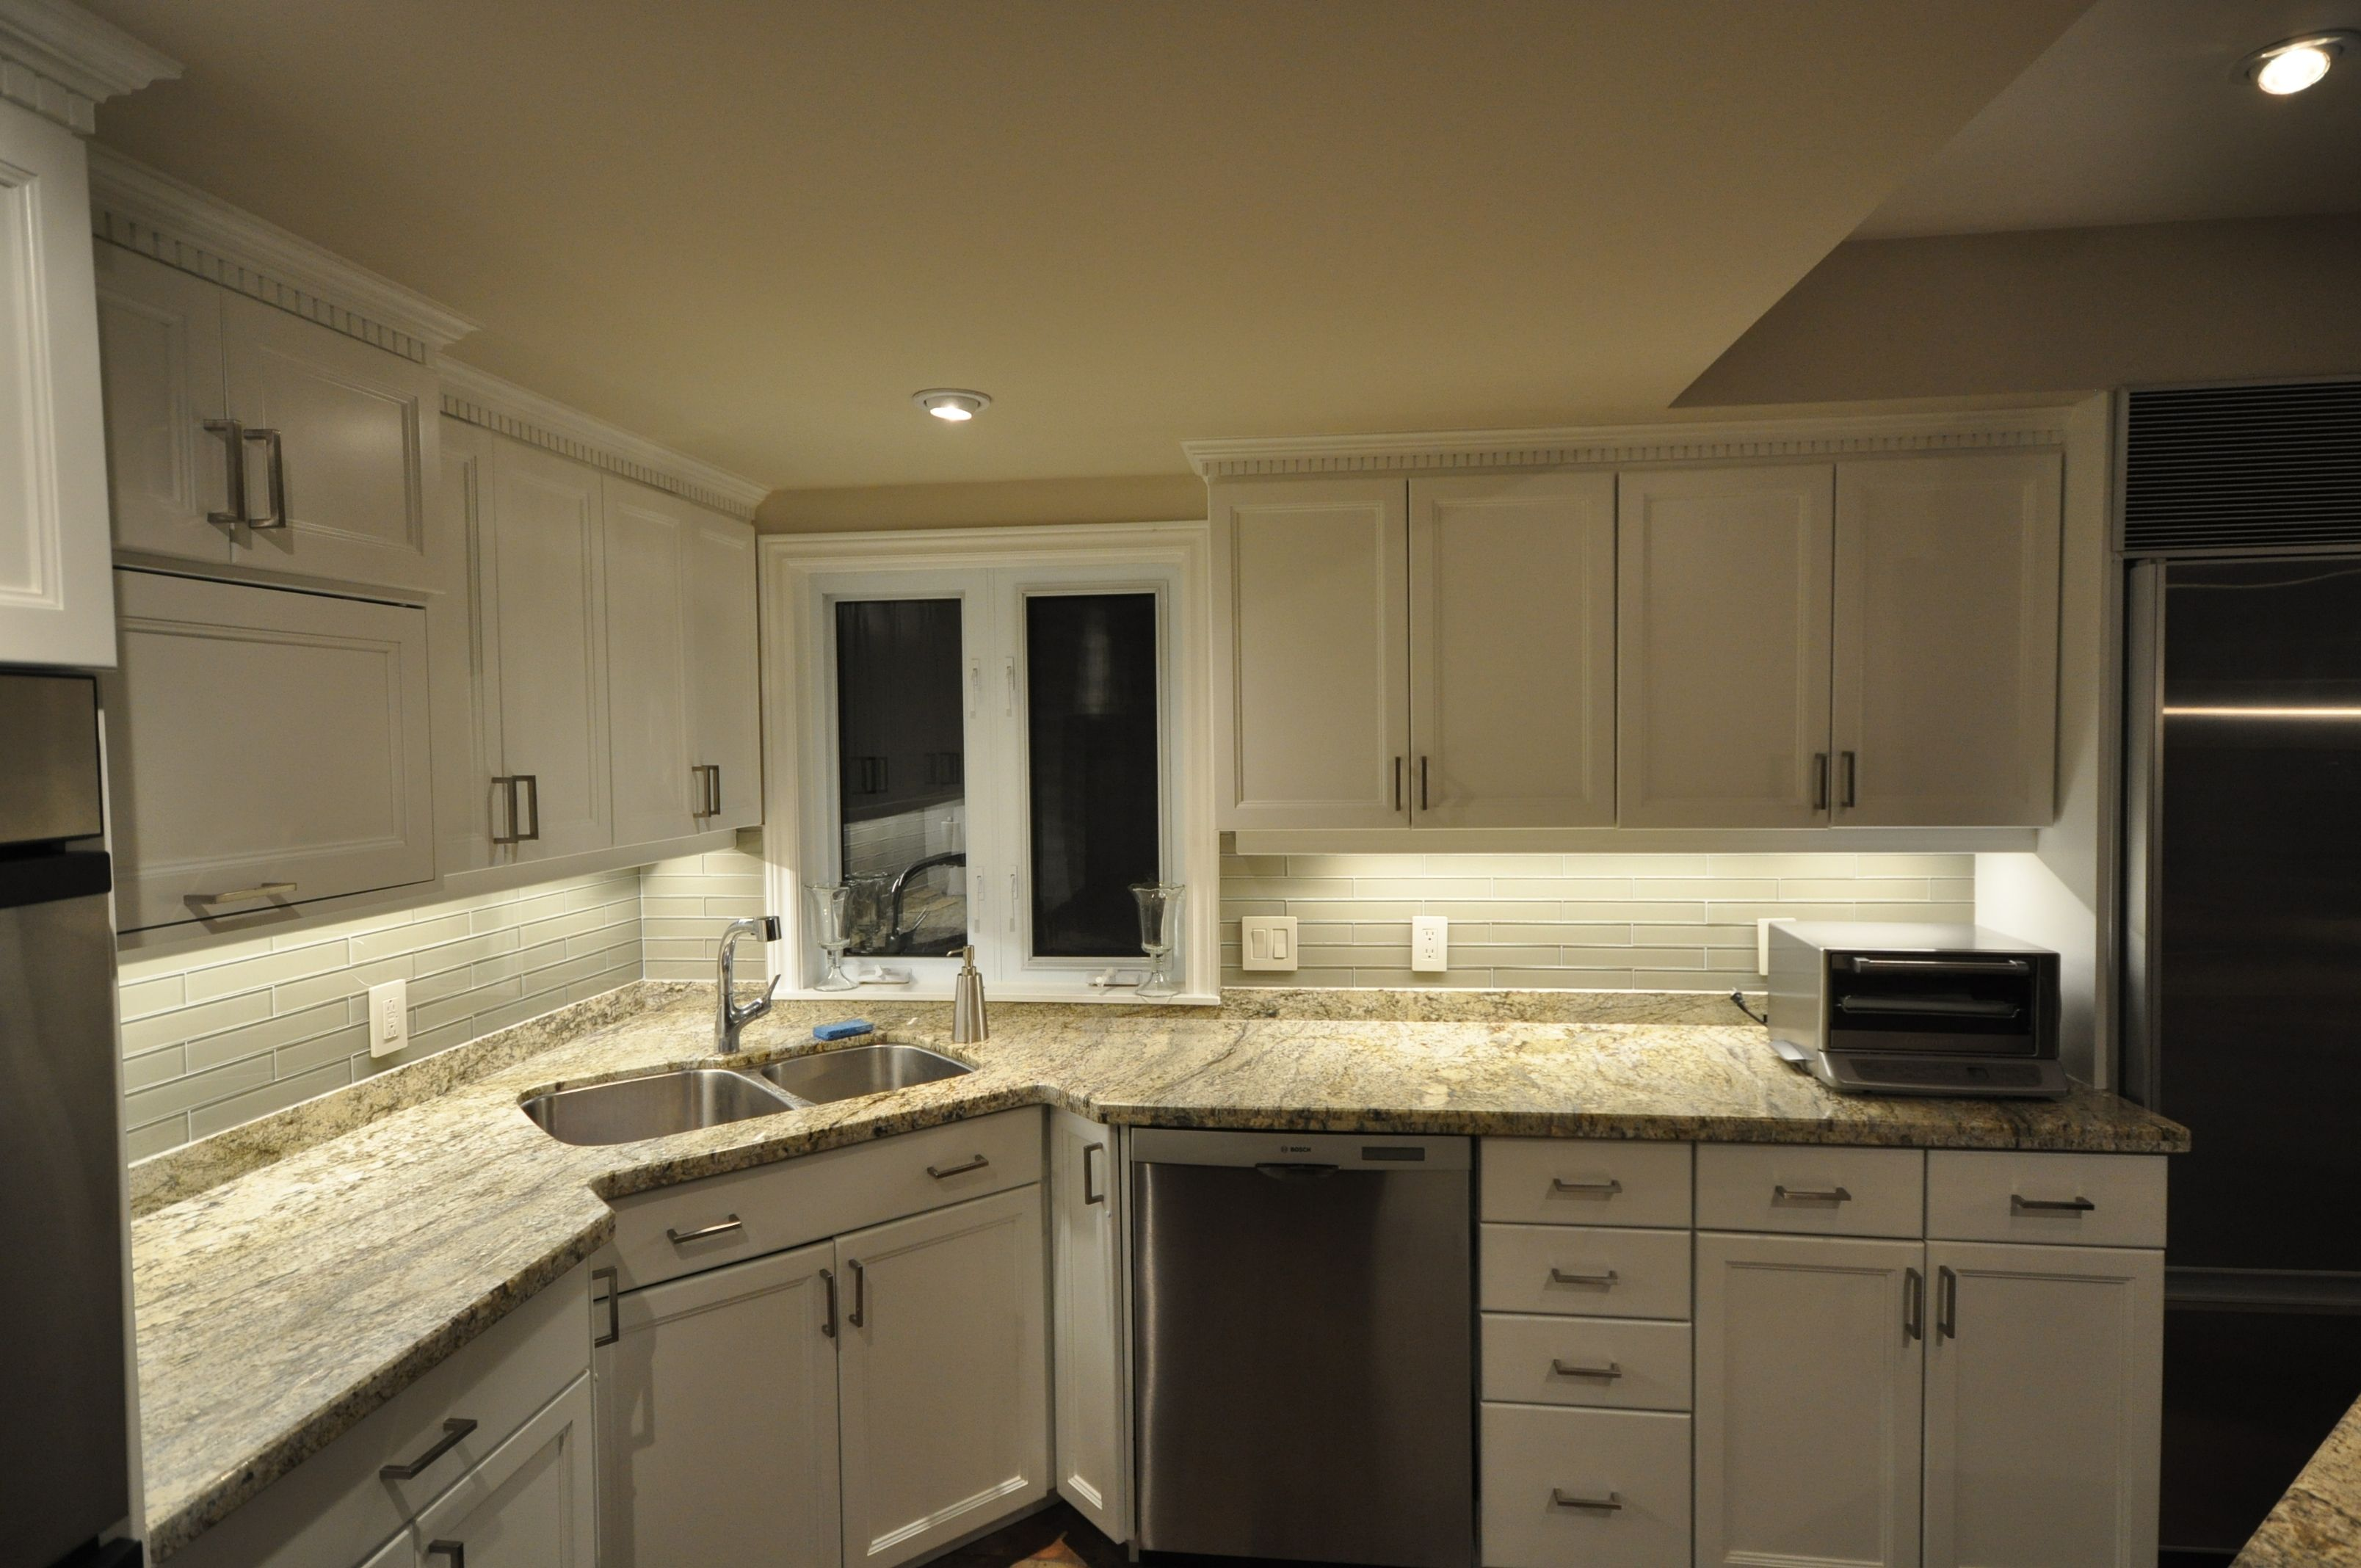 RAB Designs LED strip lights install for under cabinet